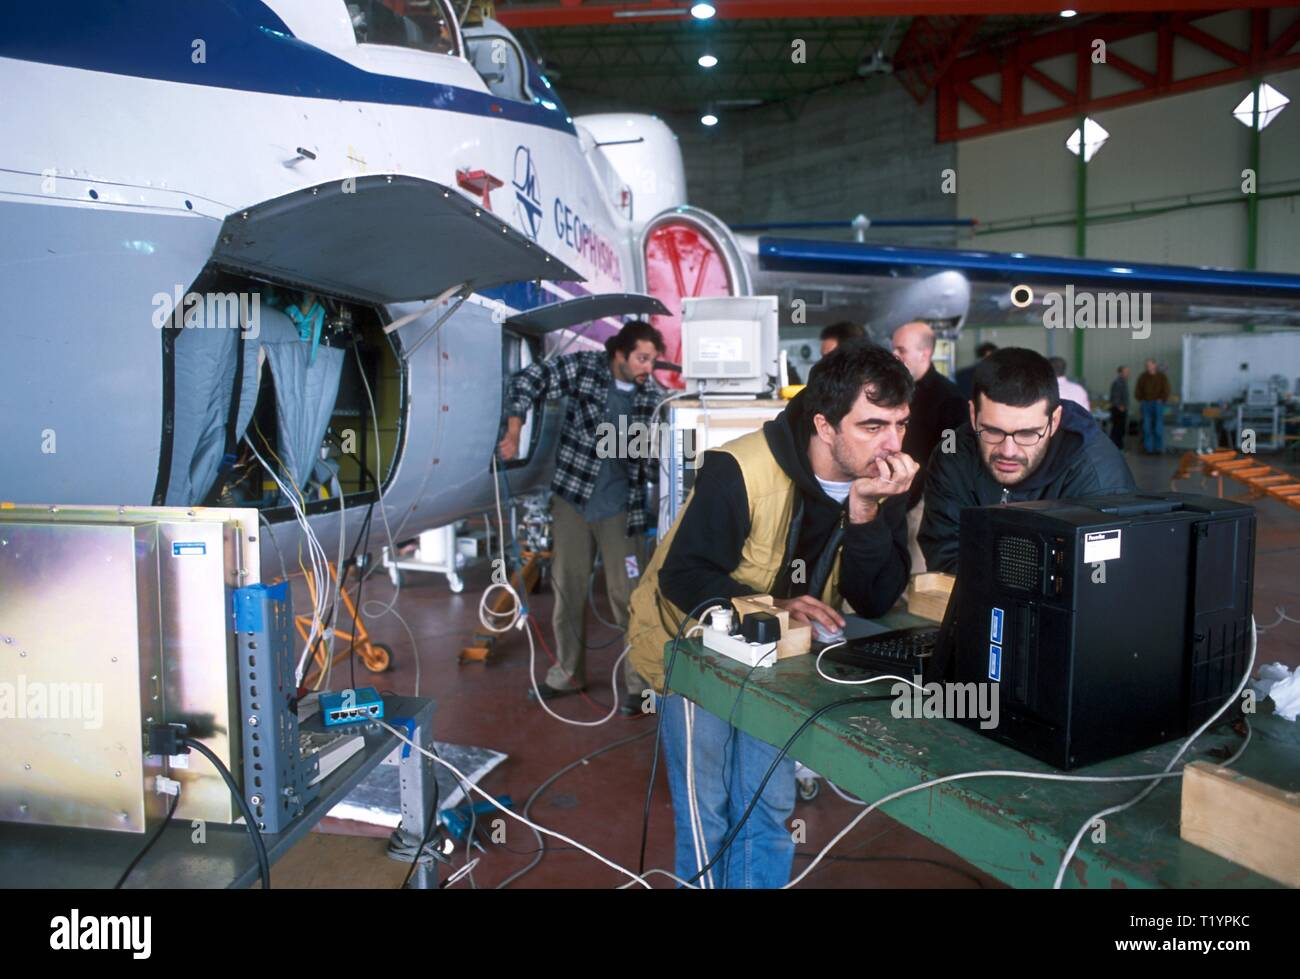 Myasishchev M-55, former Soviet military spy airplane, from 1992 employed by the Scientific European Consortium  Geophysica for atmosphere searches about stratospheric ozone, stratosphere-troposphere interaction and its repercussions on global warming - Stock Image